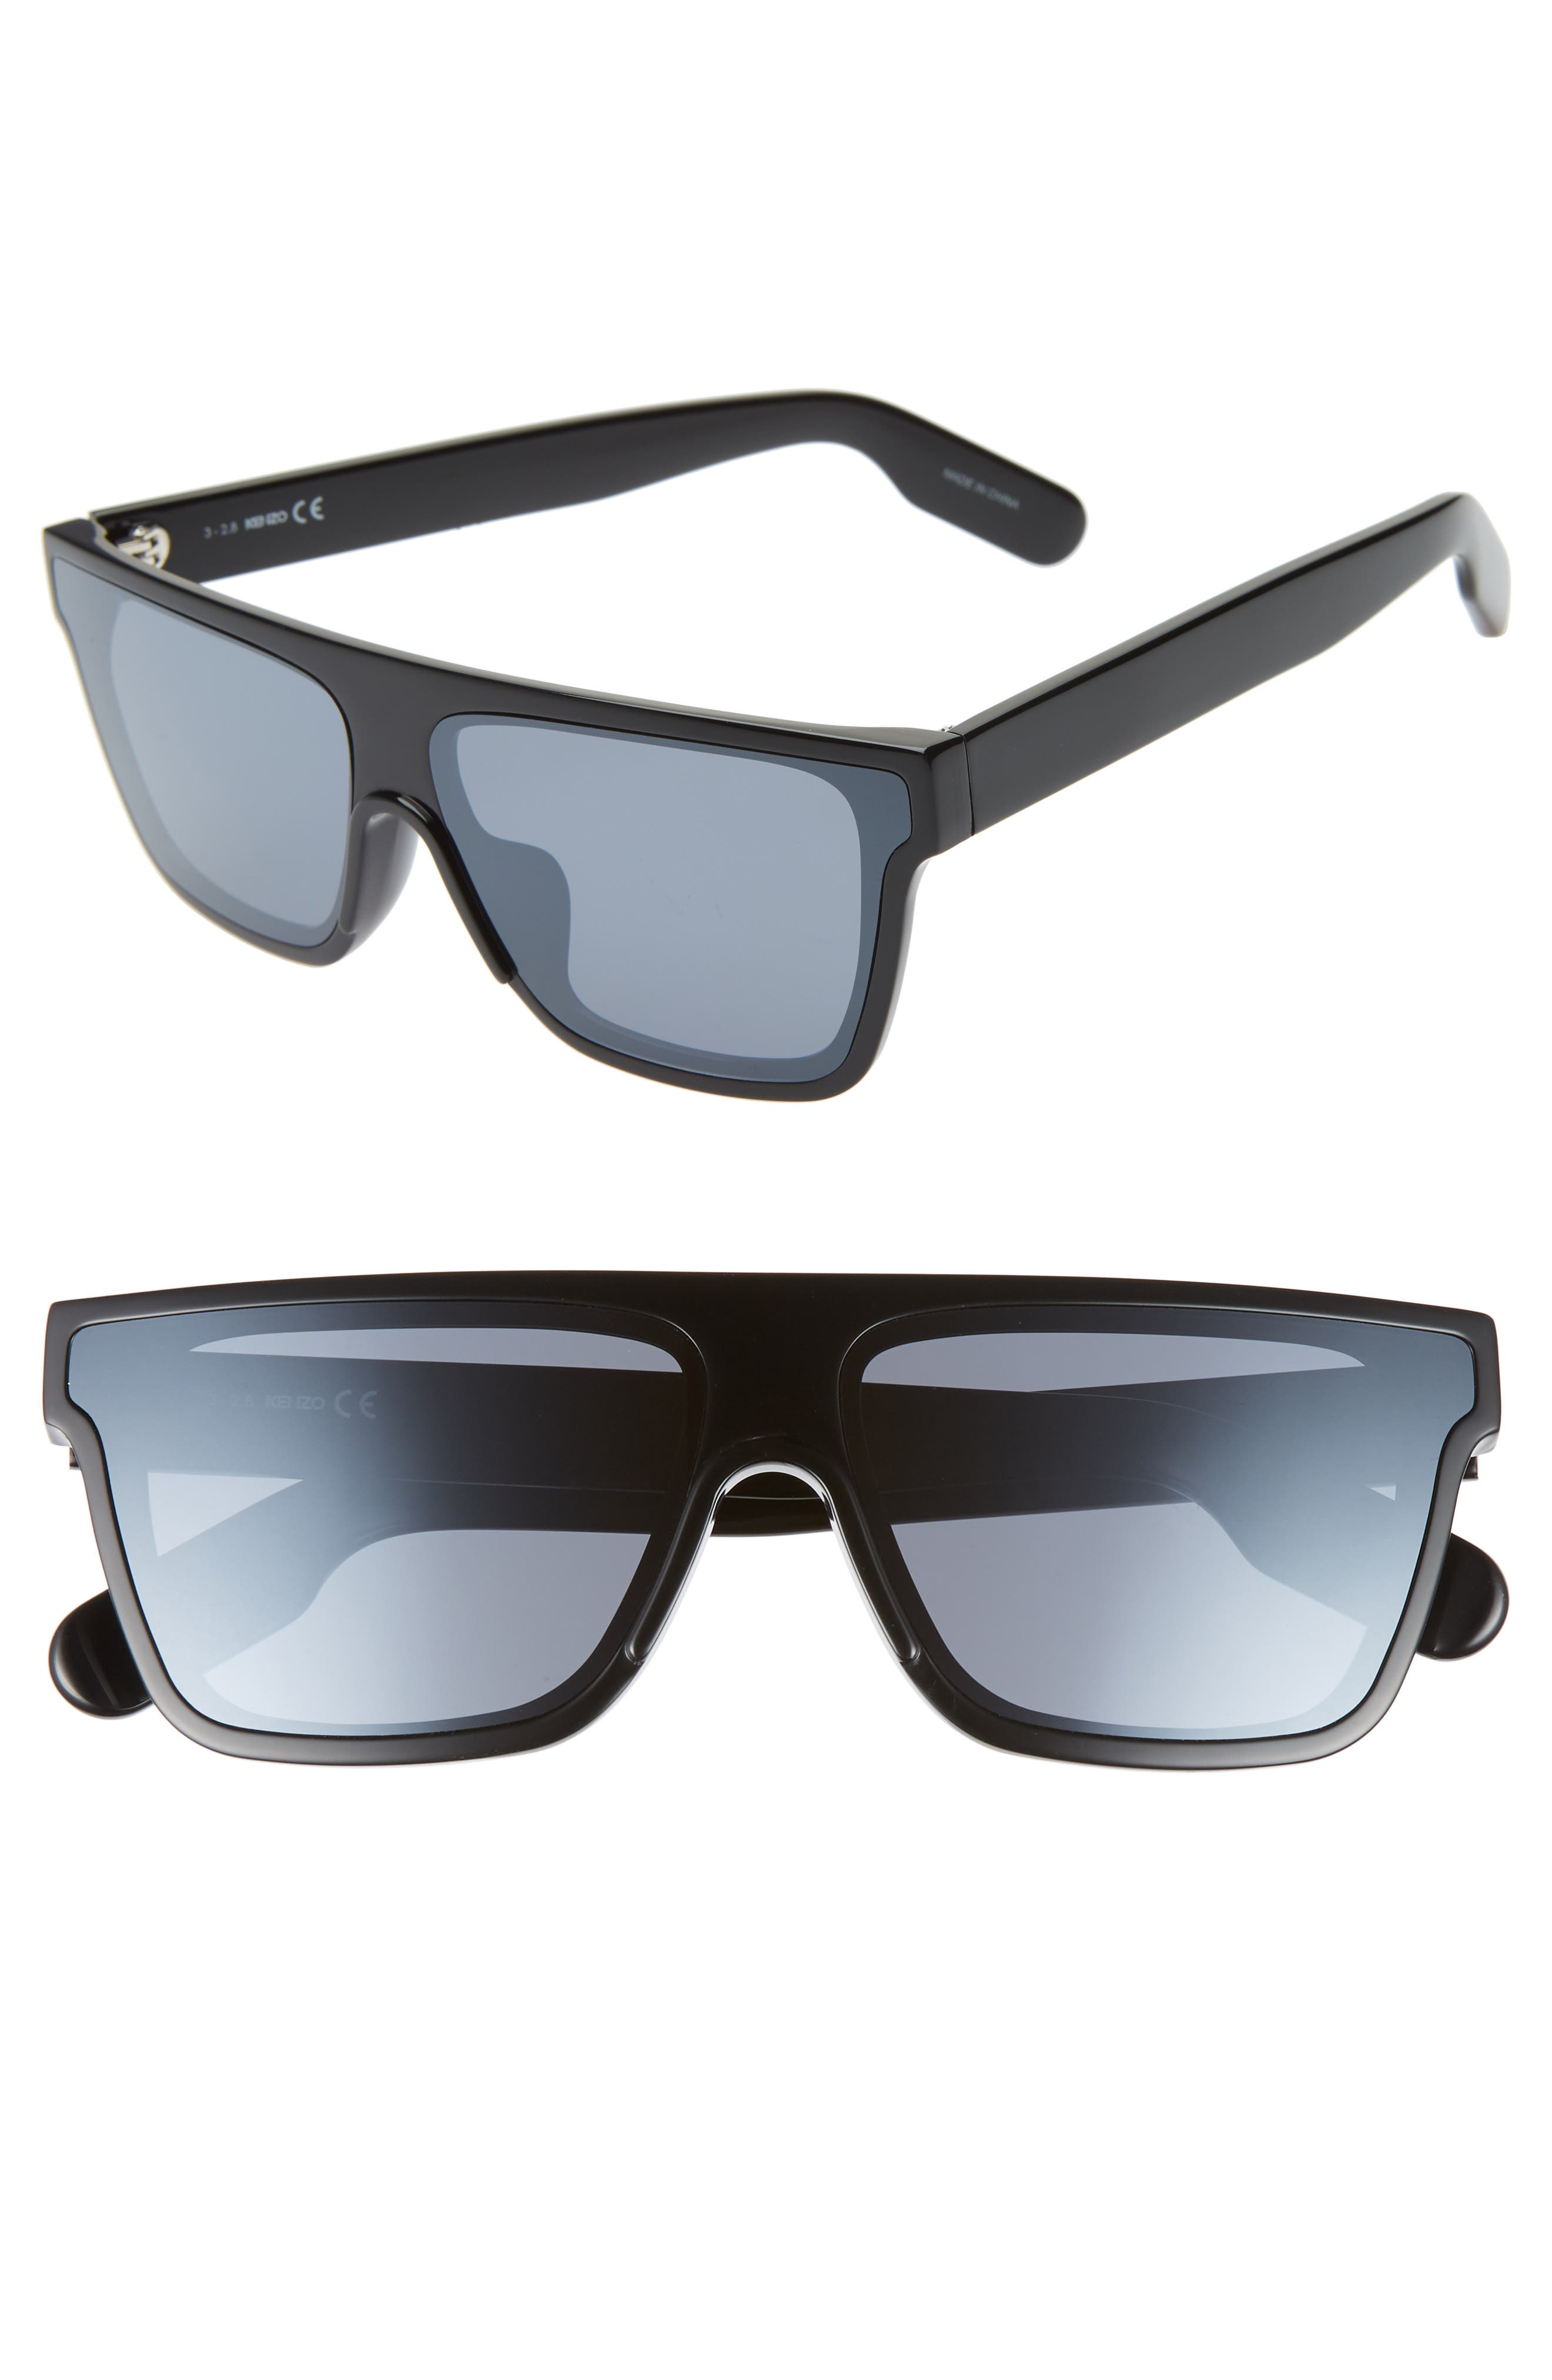 67mm Special Fit Oversize Flat Top Sunglasses, Main, color, SHINY BLACK/ SMOKE MIRROR